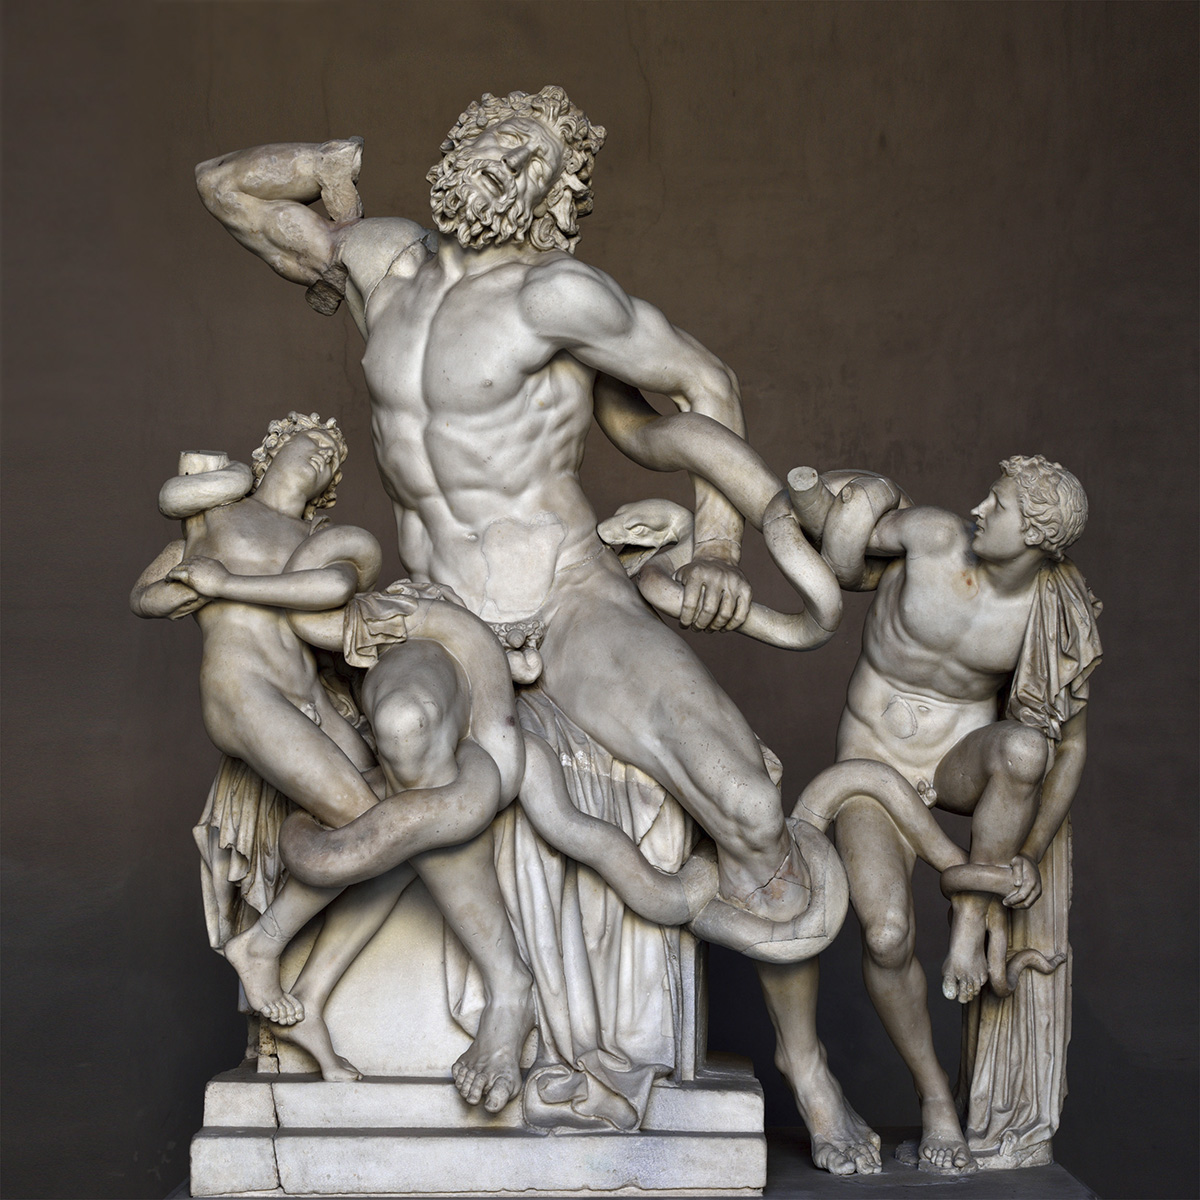 Laocoon. Marble. 1st century CE. Inv. No. 1059. Rome, Vatican Museums, Pius-Clementine Museum, Octagonal Court, Laocoon Cabinet, 2